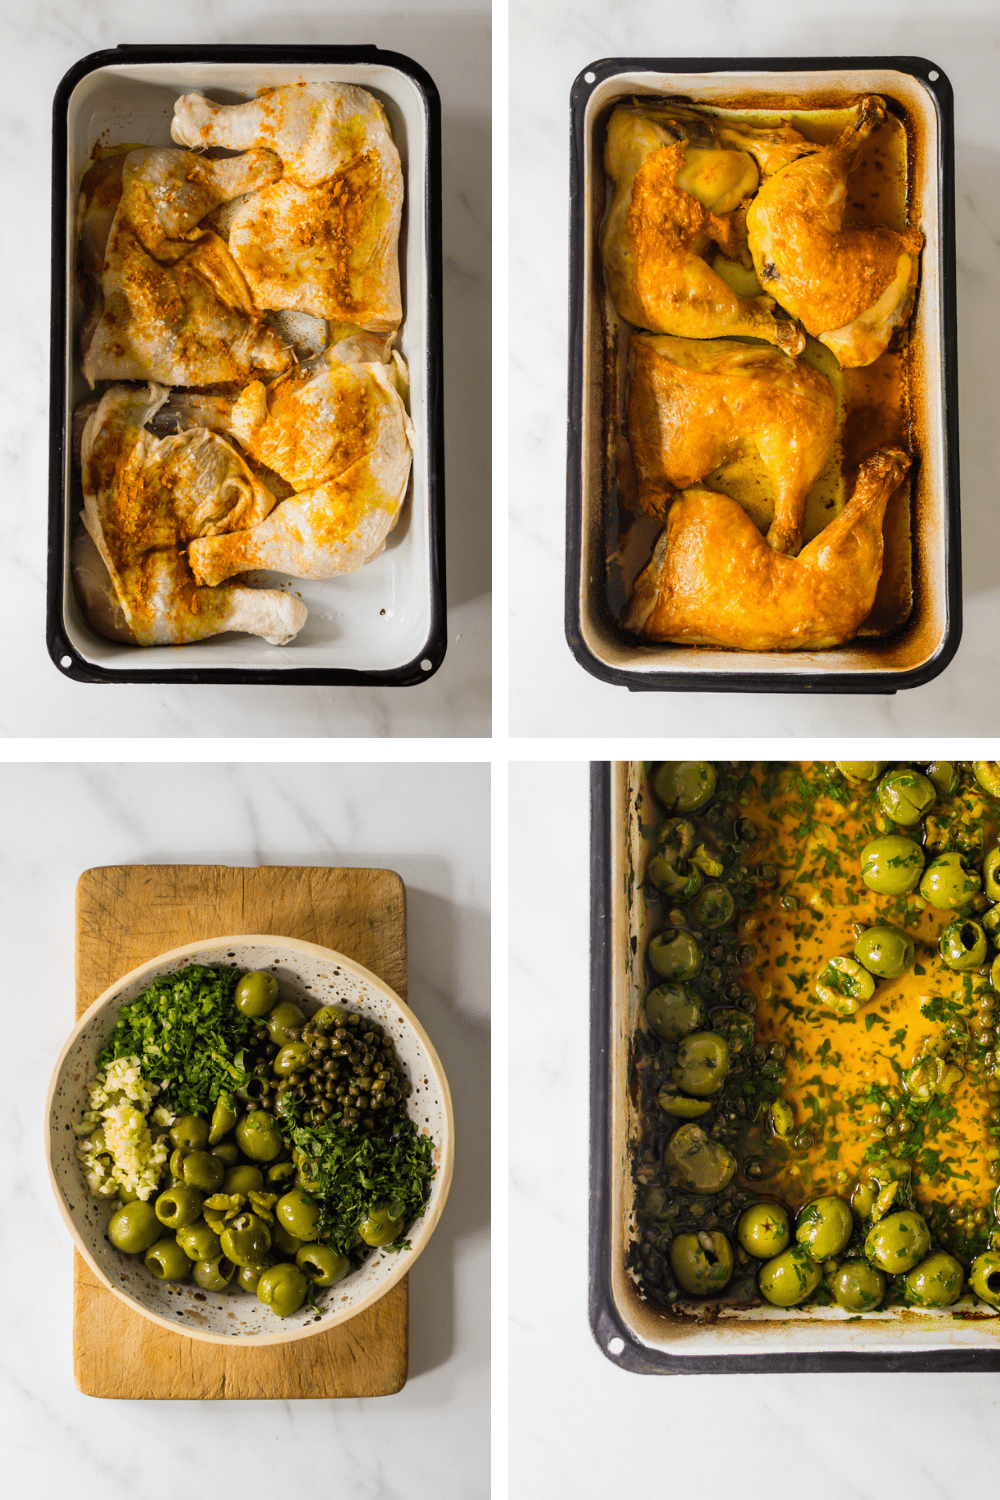 4 images of preparing baked chicken and an olive and oil dressing.